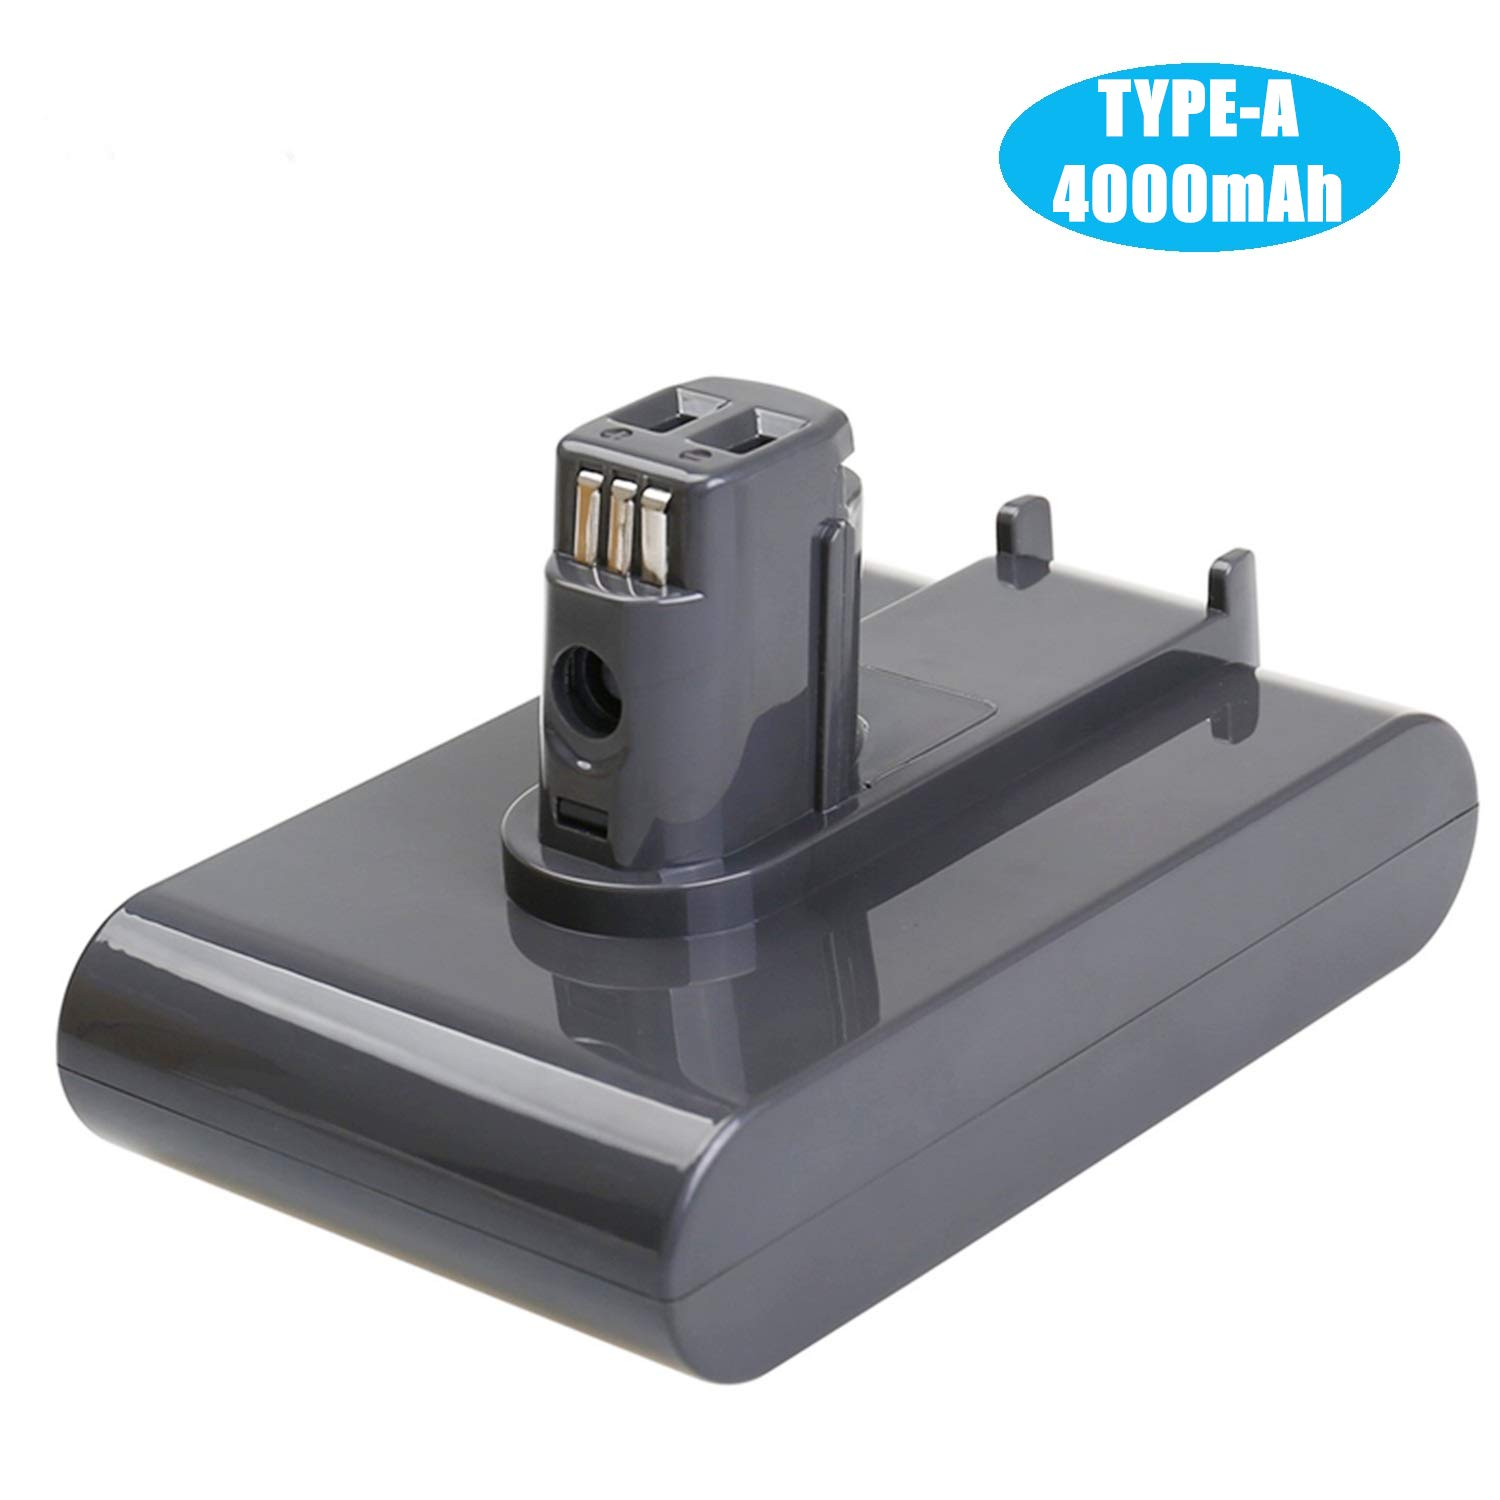 22.2V 4000mAh Replacement for Dyson DC31 Battery for Dyson DC34 DC35 DC44 (Not Fit Type B, DC44 MK2) 917083-01 Handheld Vacuum Cleaner by VANTTECH